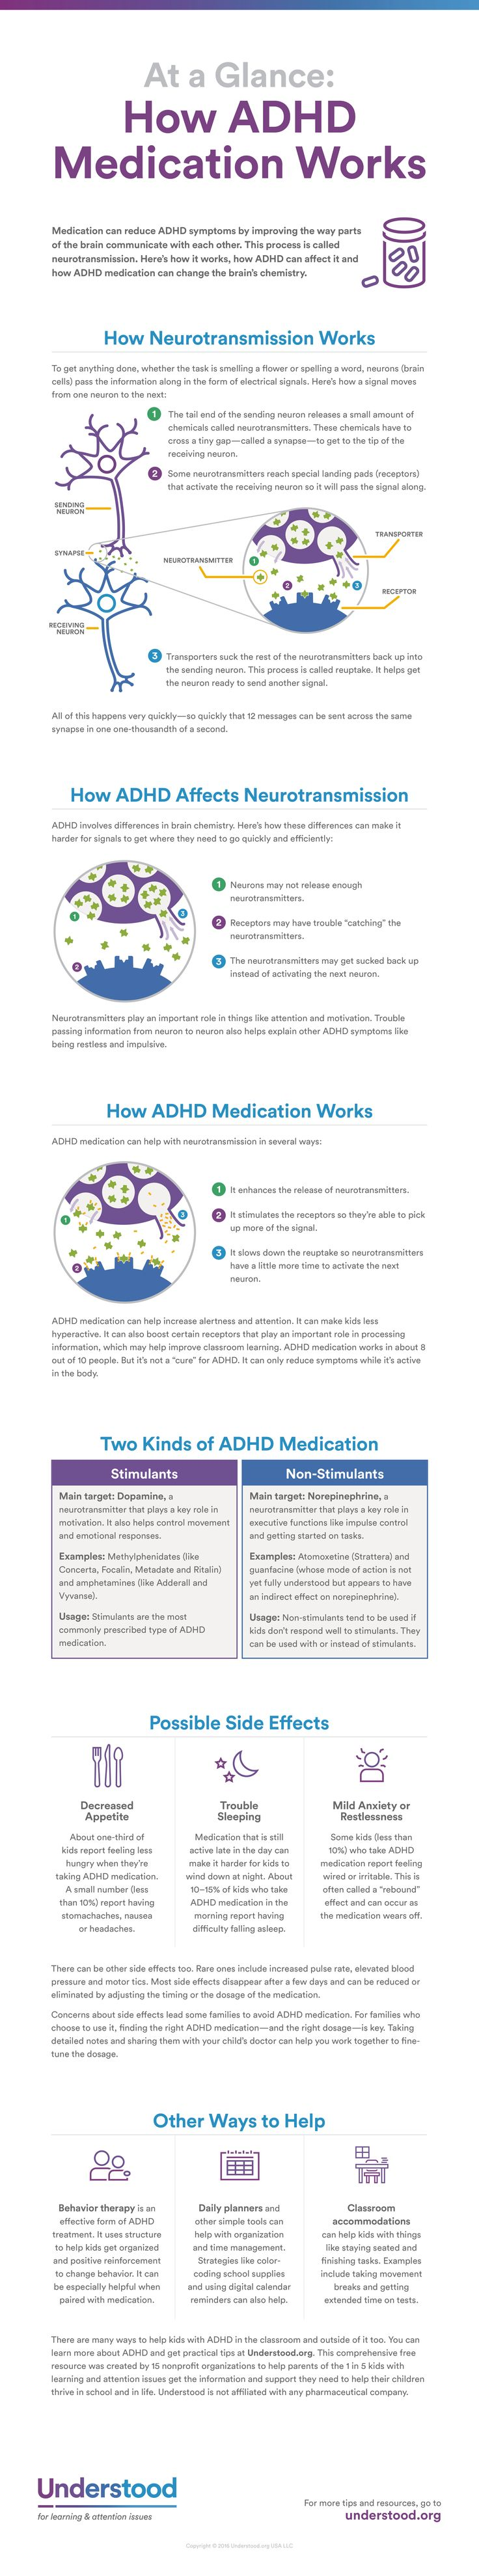 At a Glance: How ADHD Medication Works